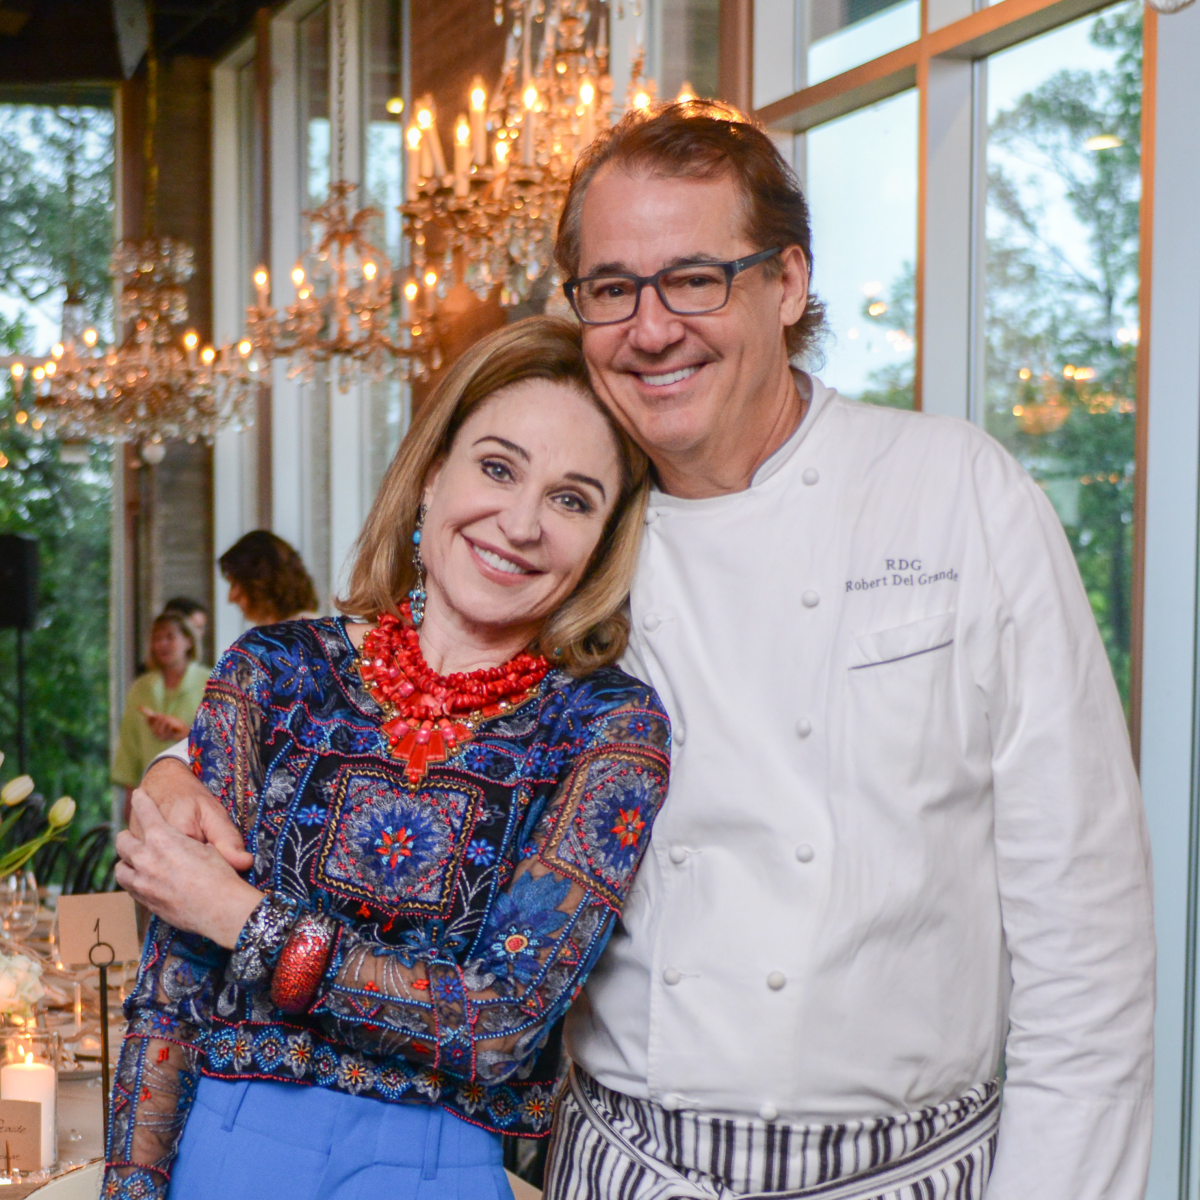 Recipe for Success 10th anny dinner, 5/16  Becca Cason Thrash, Robert Del Grande